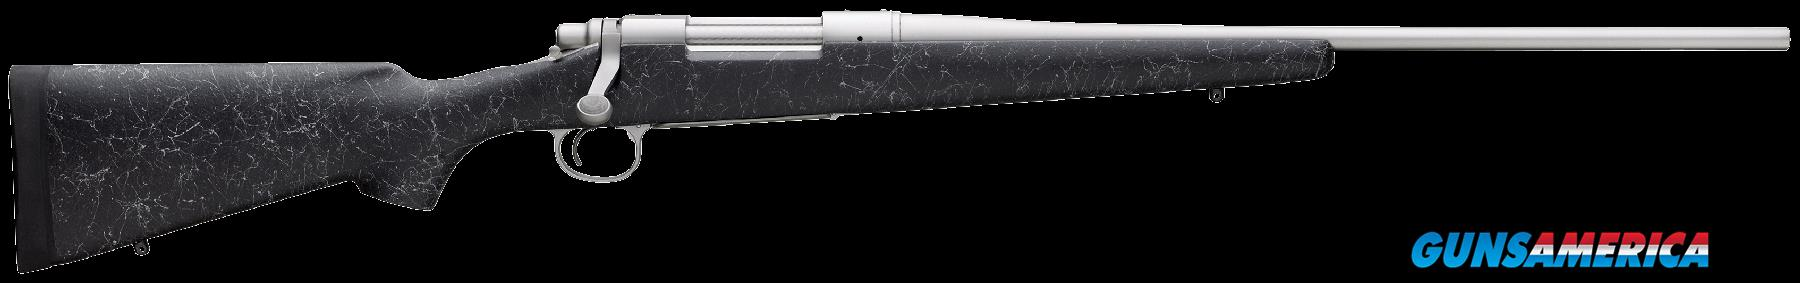 "Remington Firearms 84272 700 Mountain SS Bolt 25-06 Rem 22"" 4+1 Synthetic Black Stk Stainless Steel  Guns > Rifles > Remington Rifles - Modern > Model 700 > Sporting"